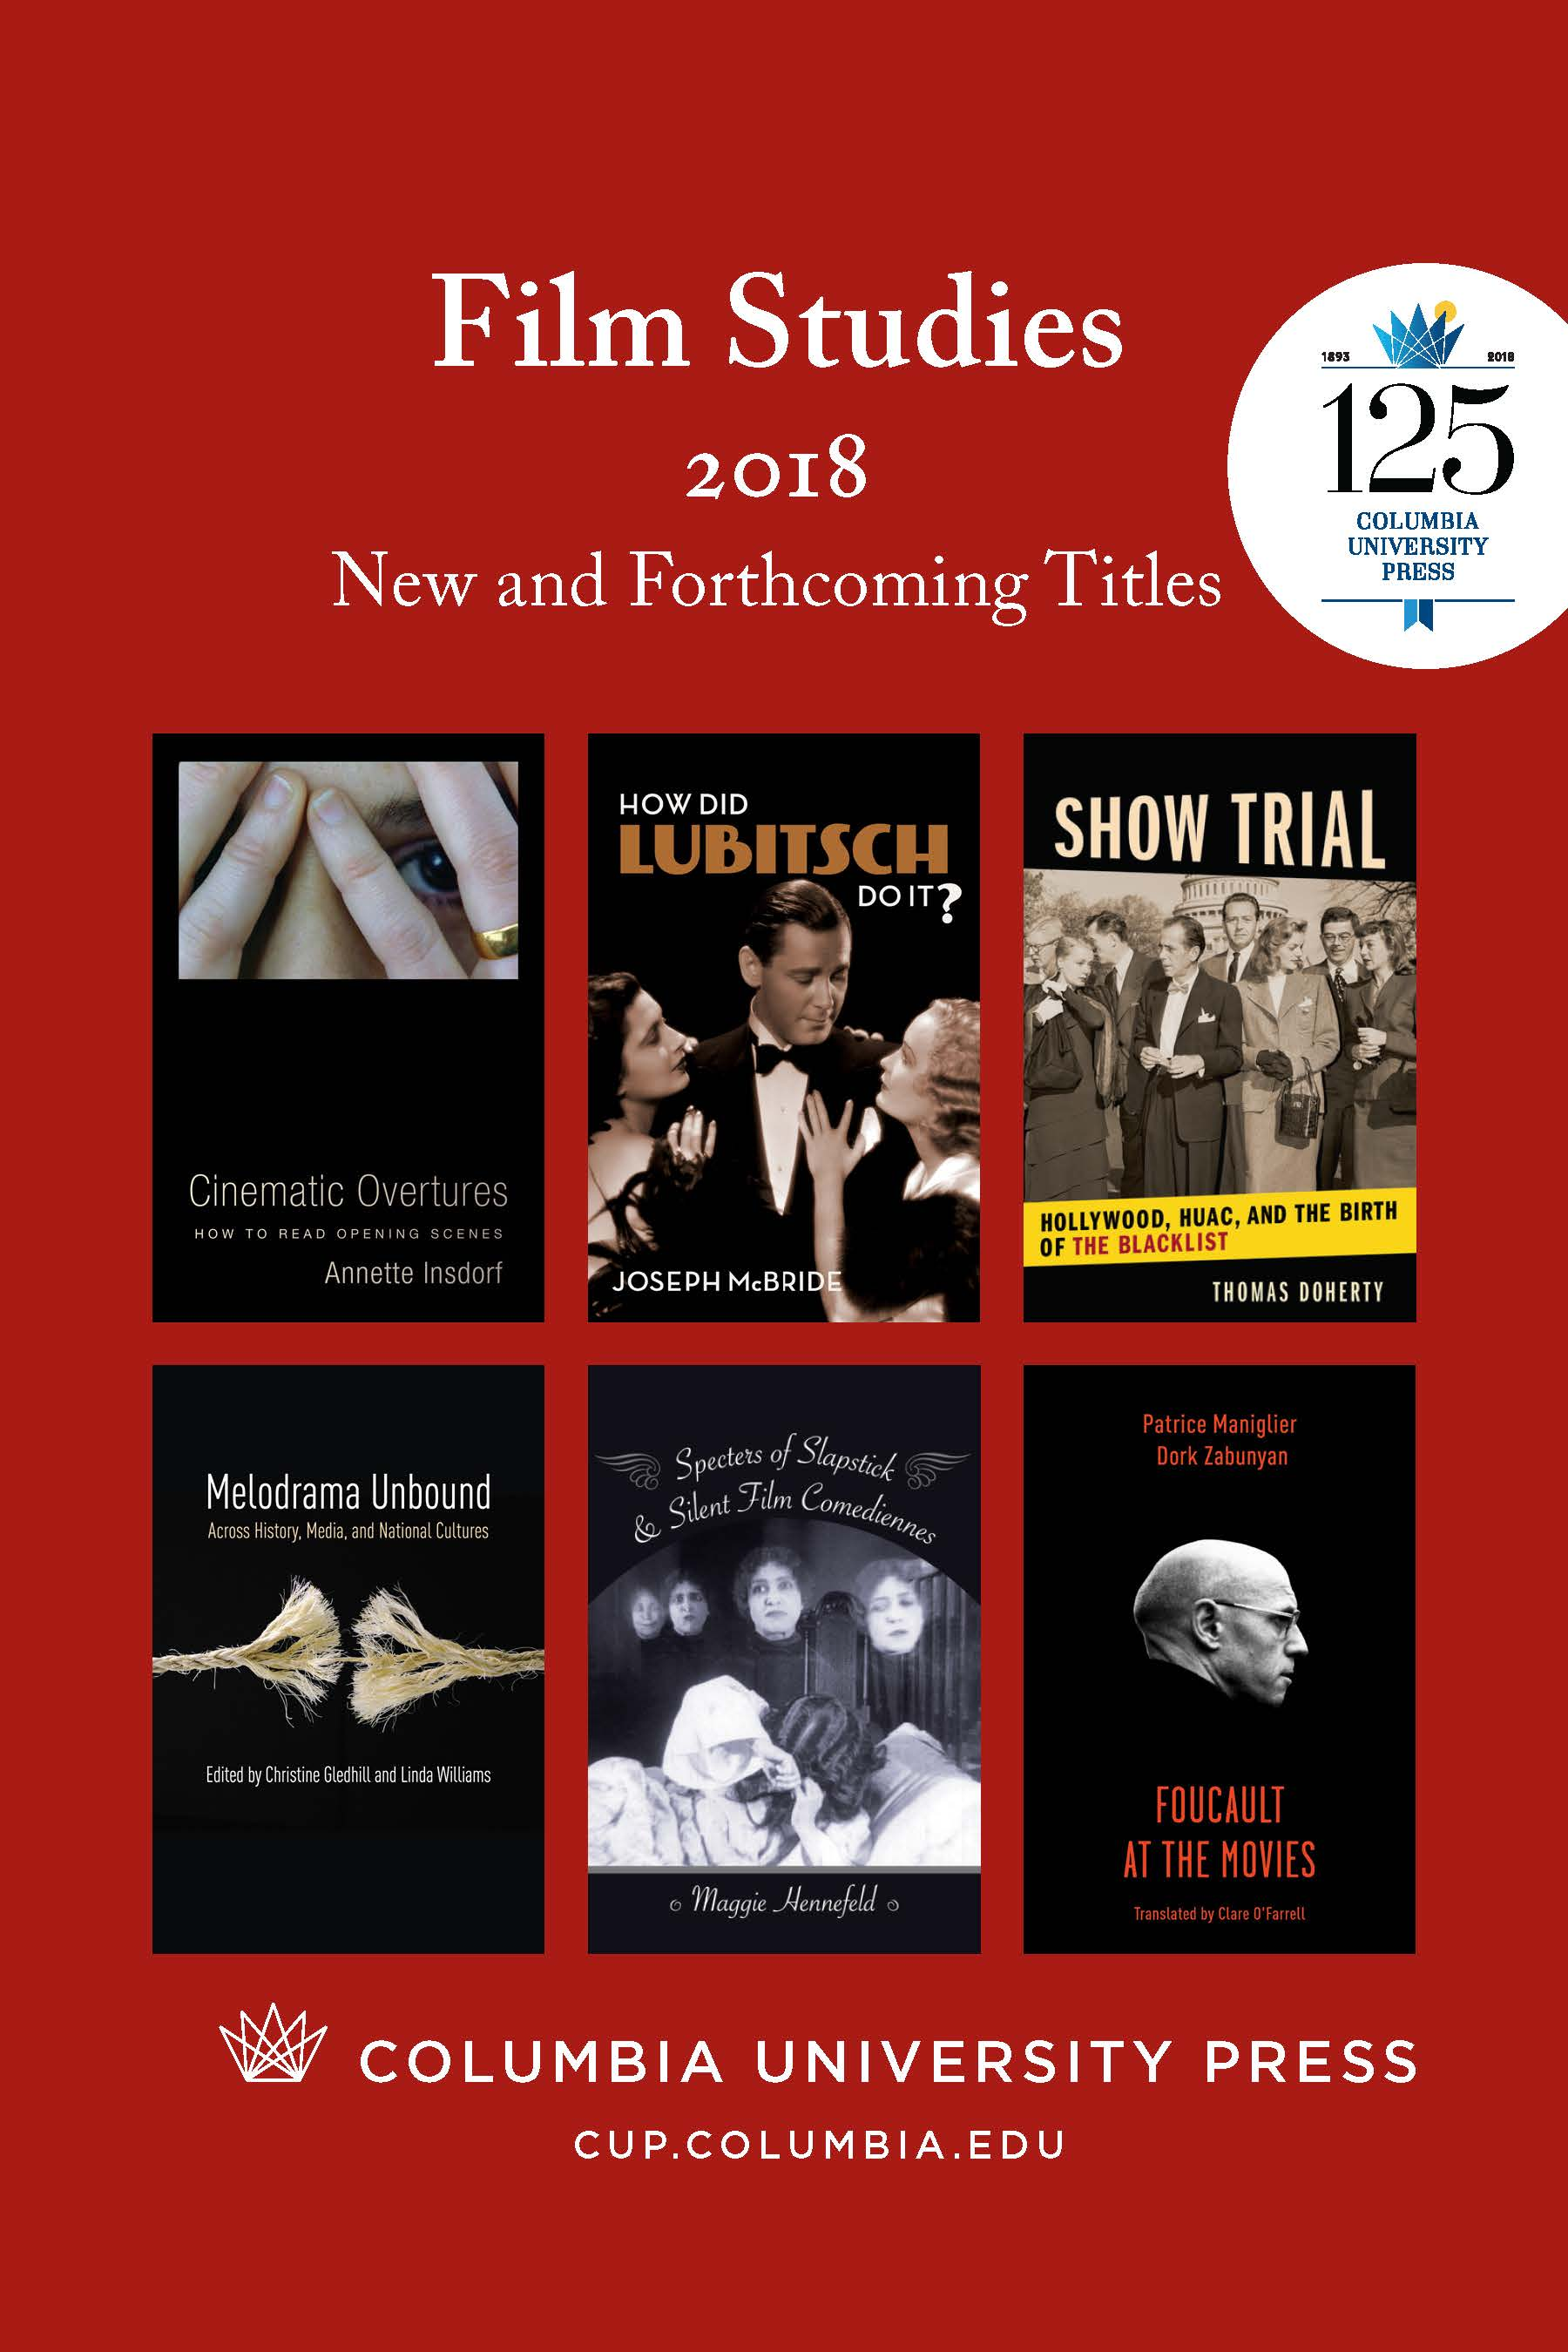 2018 Film Studies Catalog